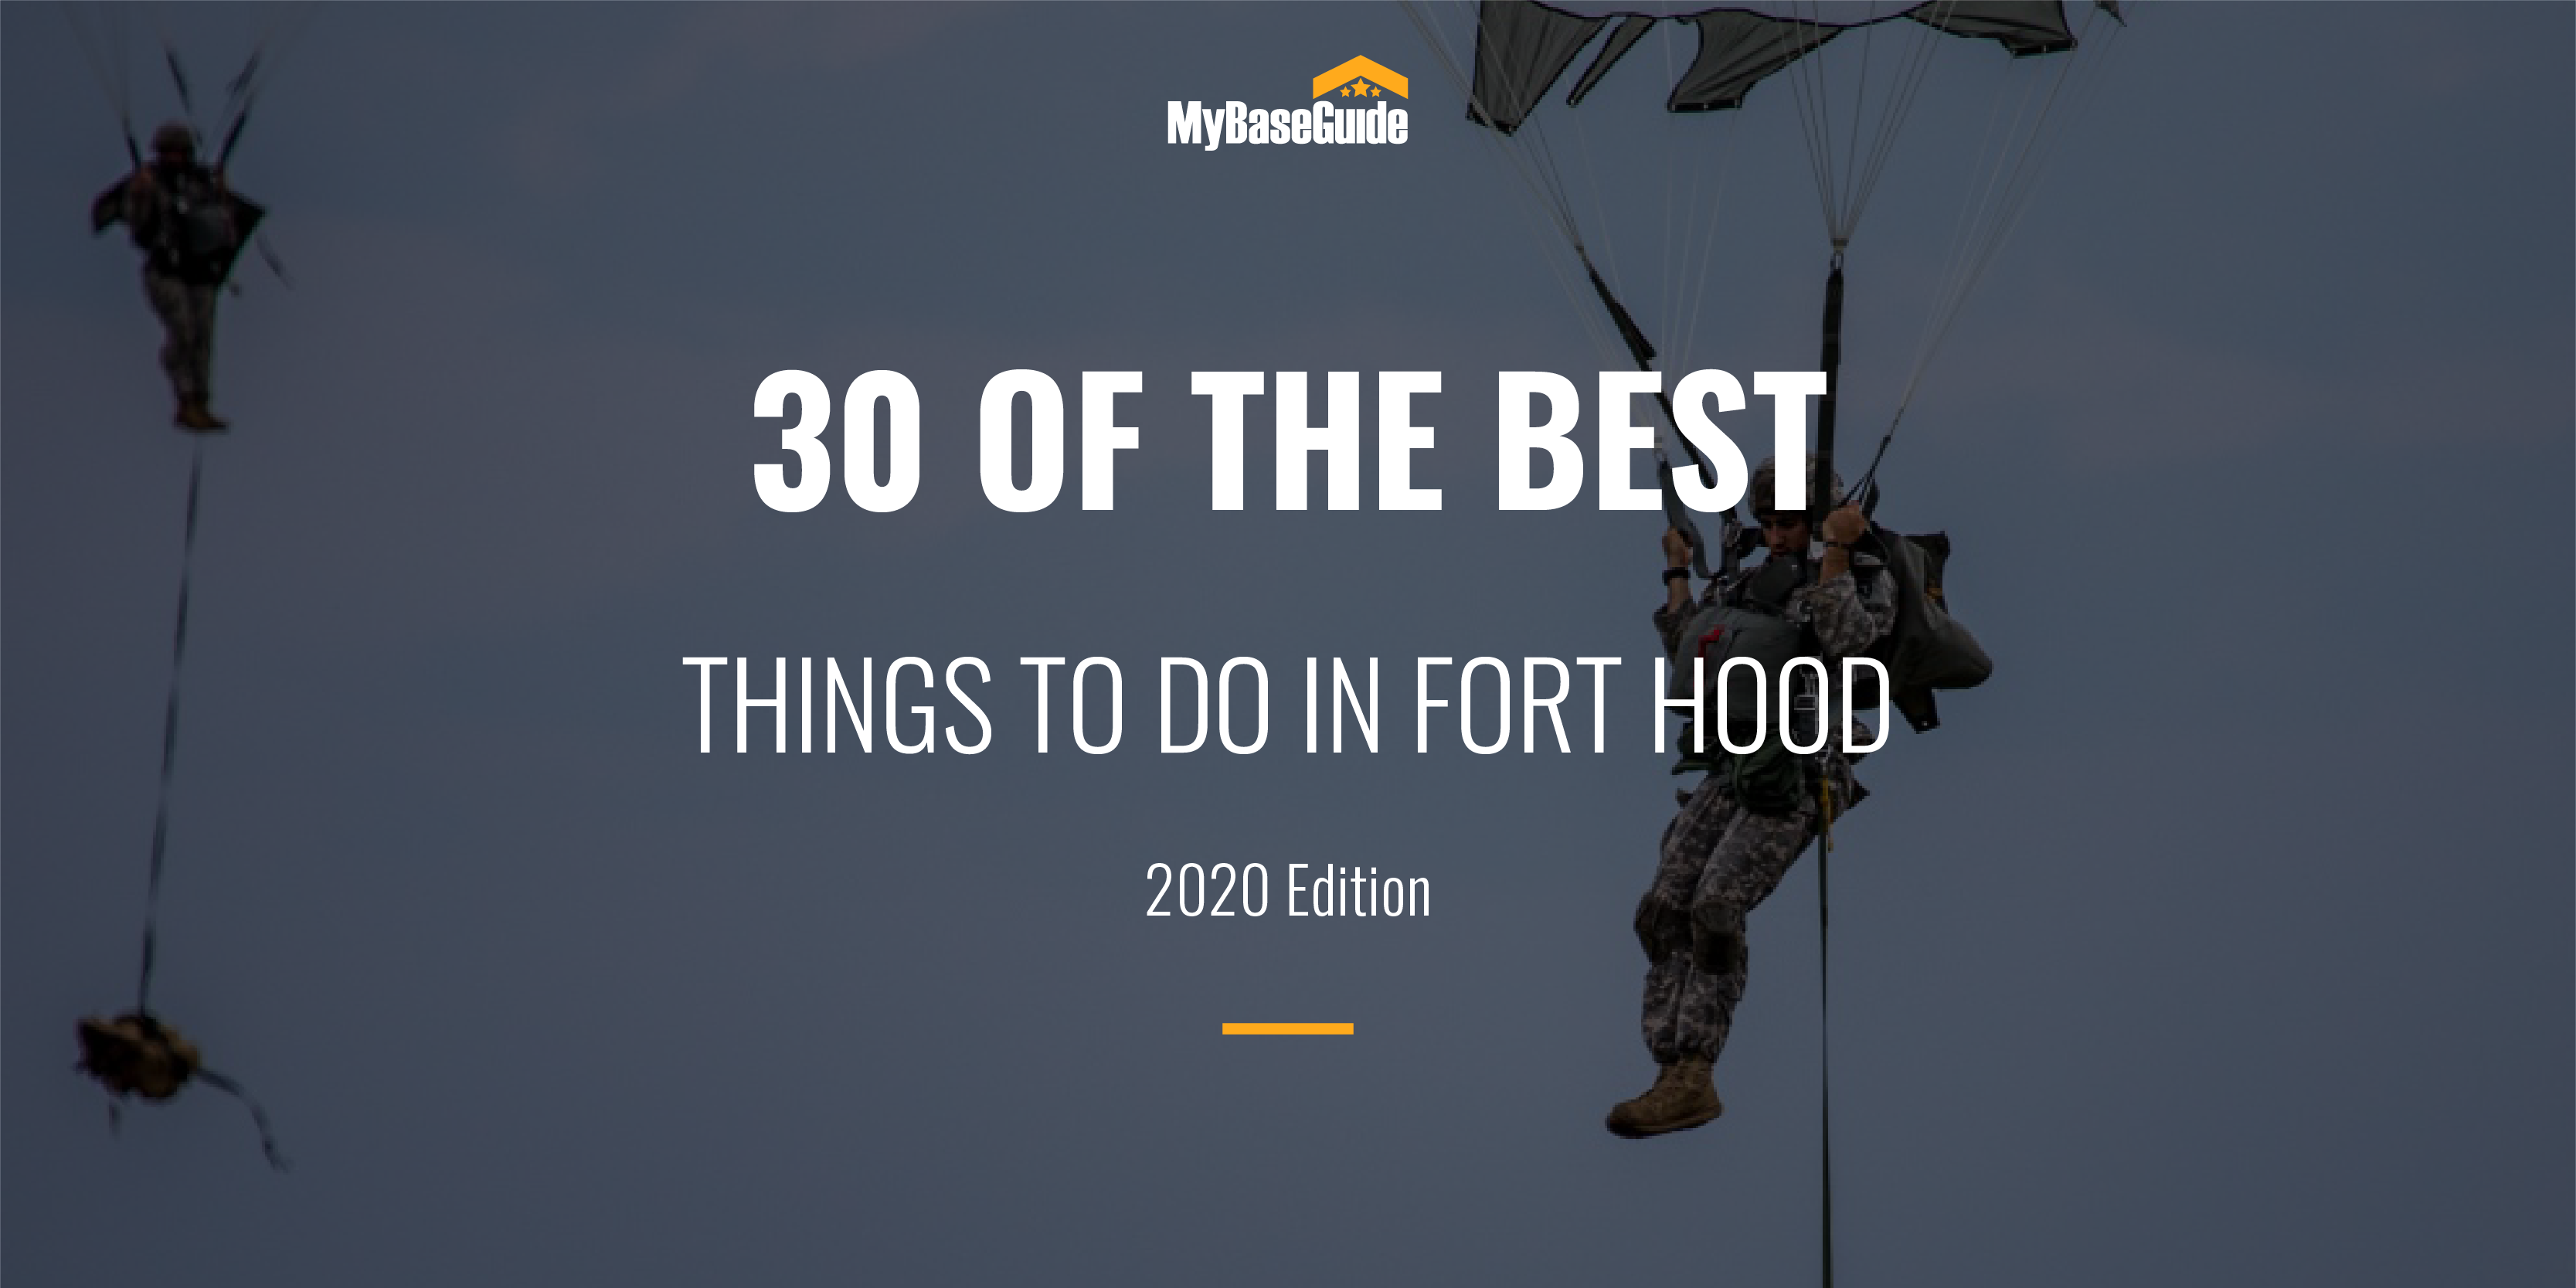 Things to Do in Fort Hood